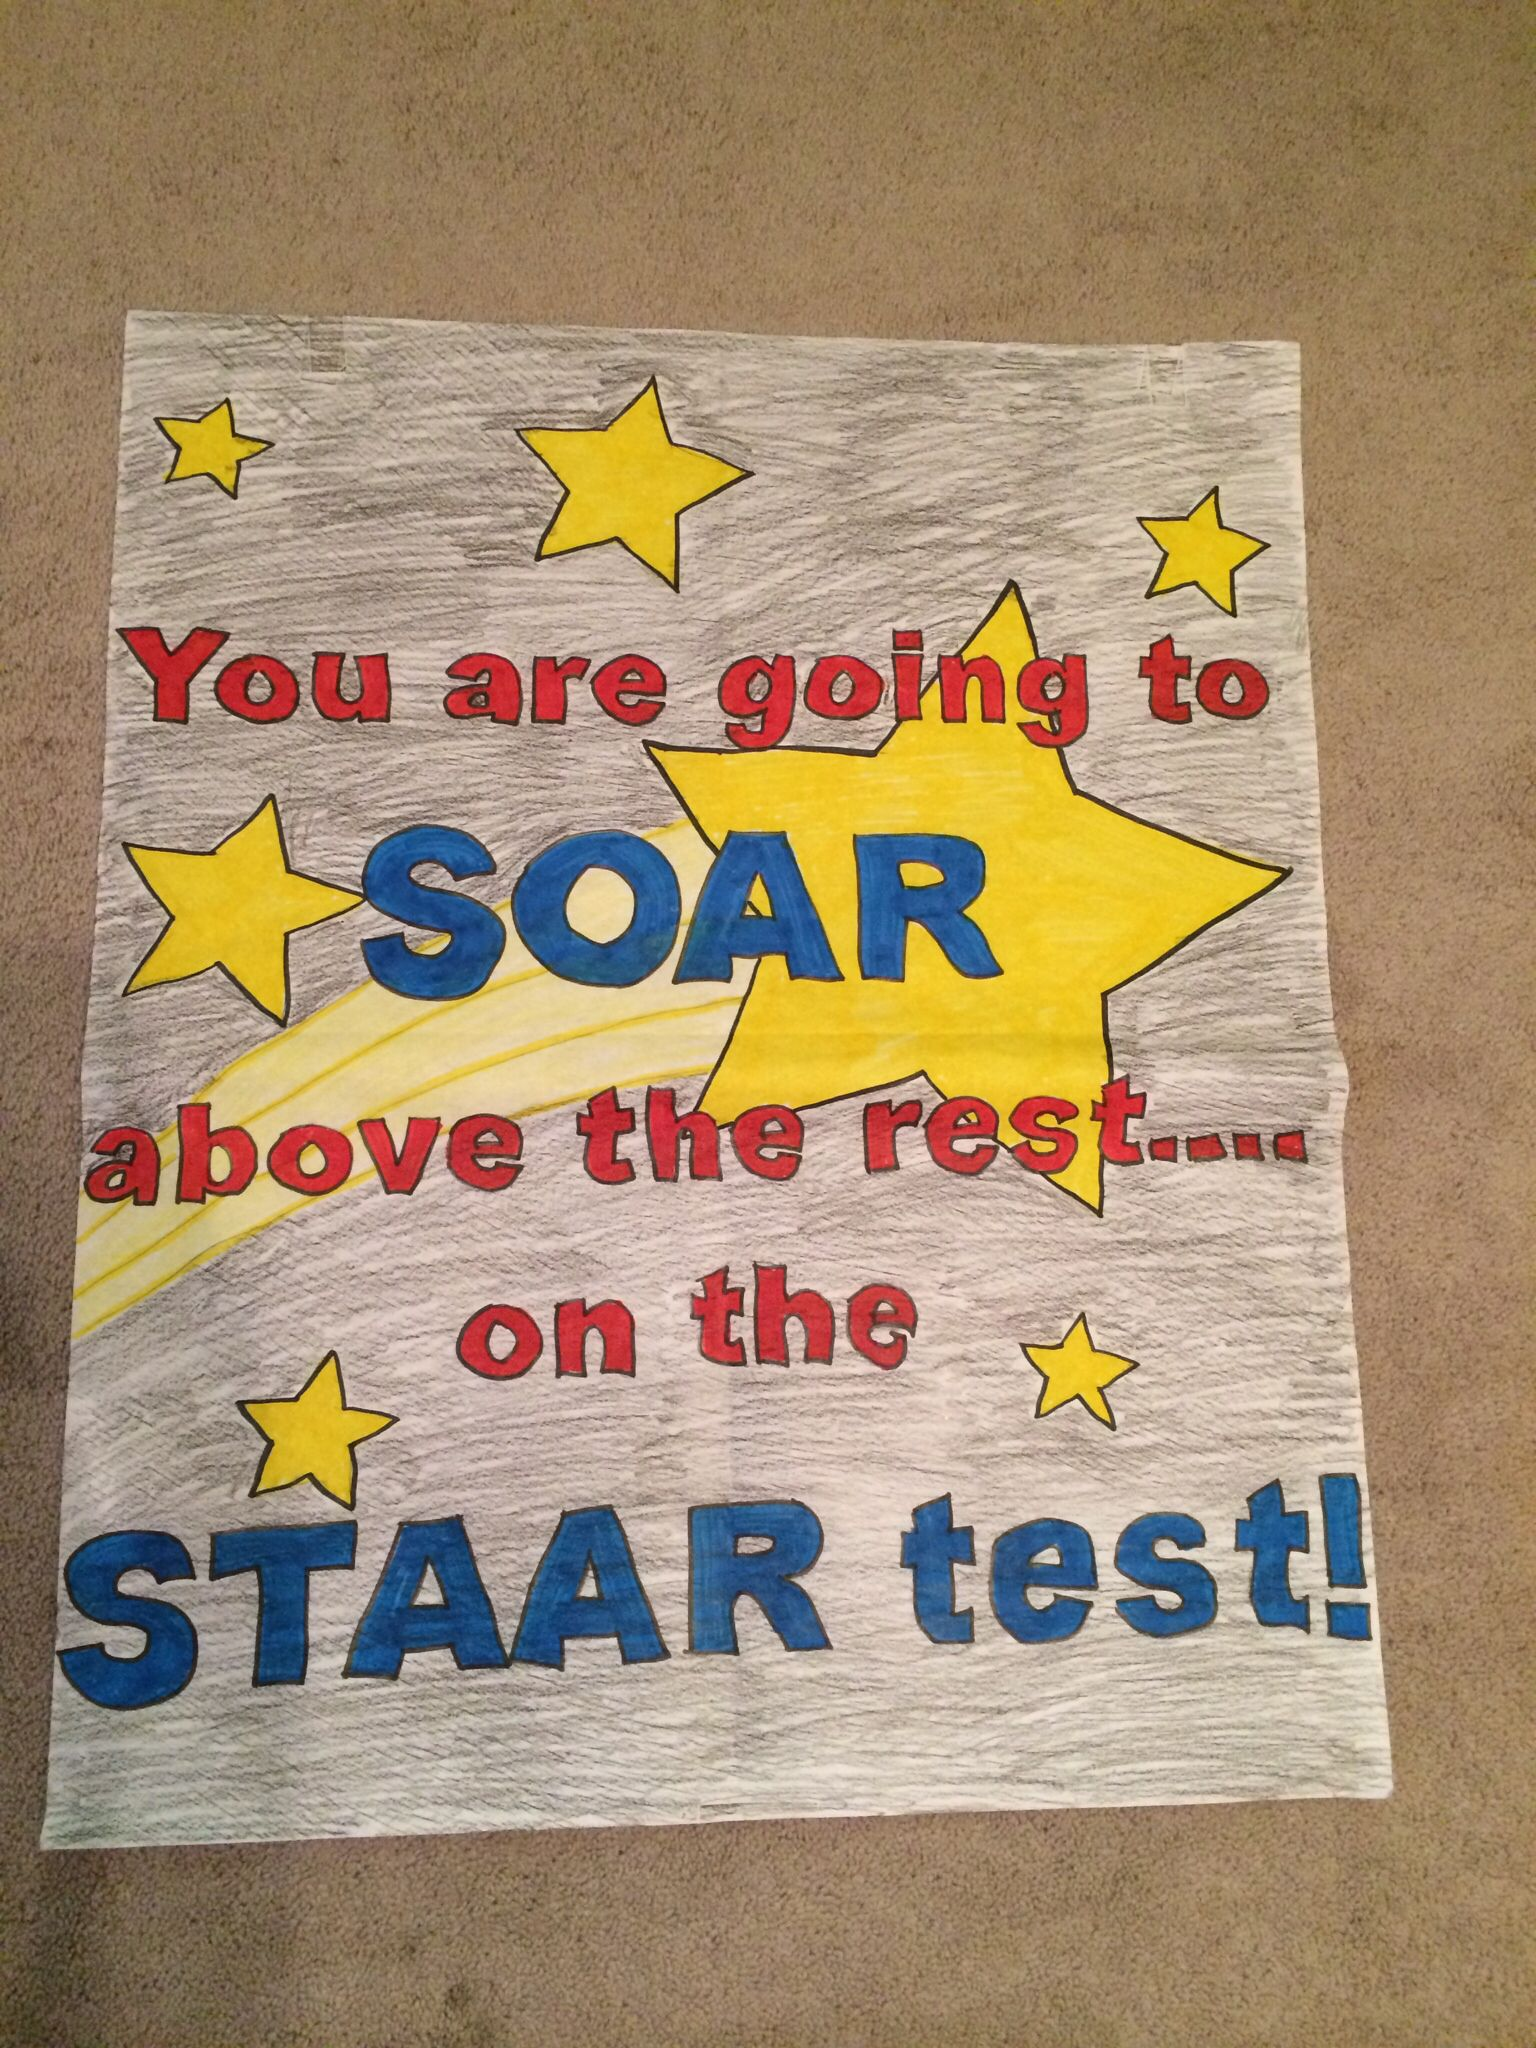 You are going to SOAR above the rest on the STAAR TEST ...